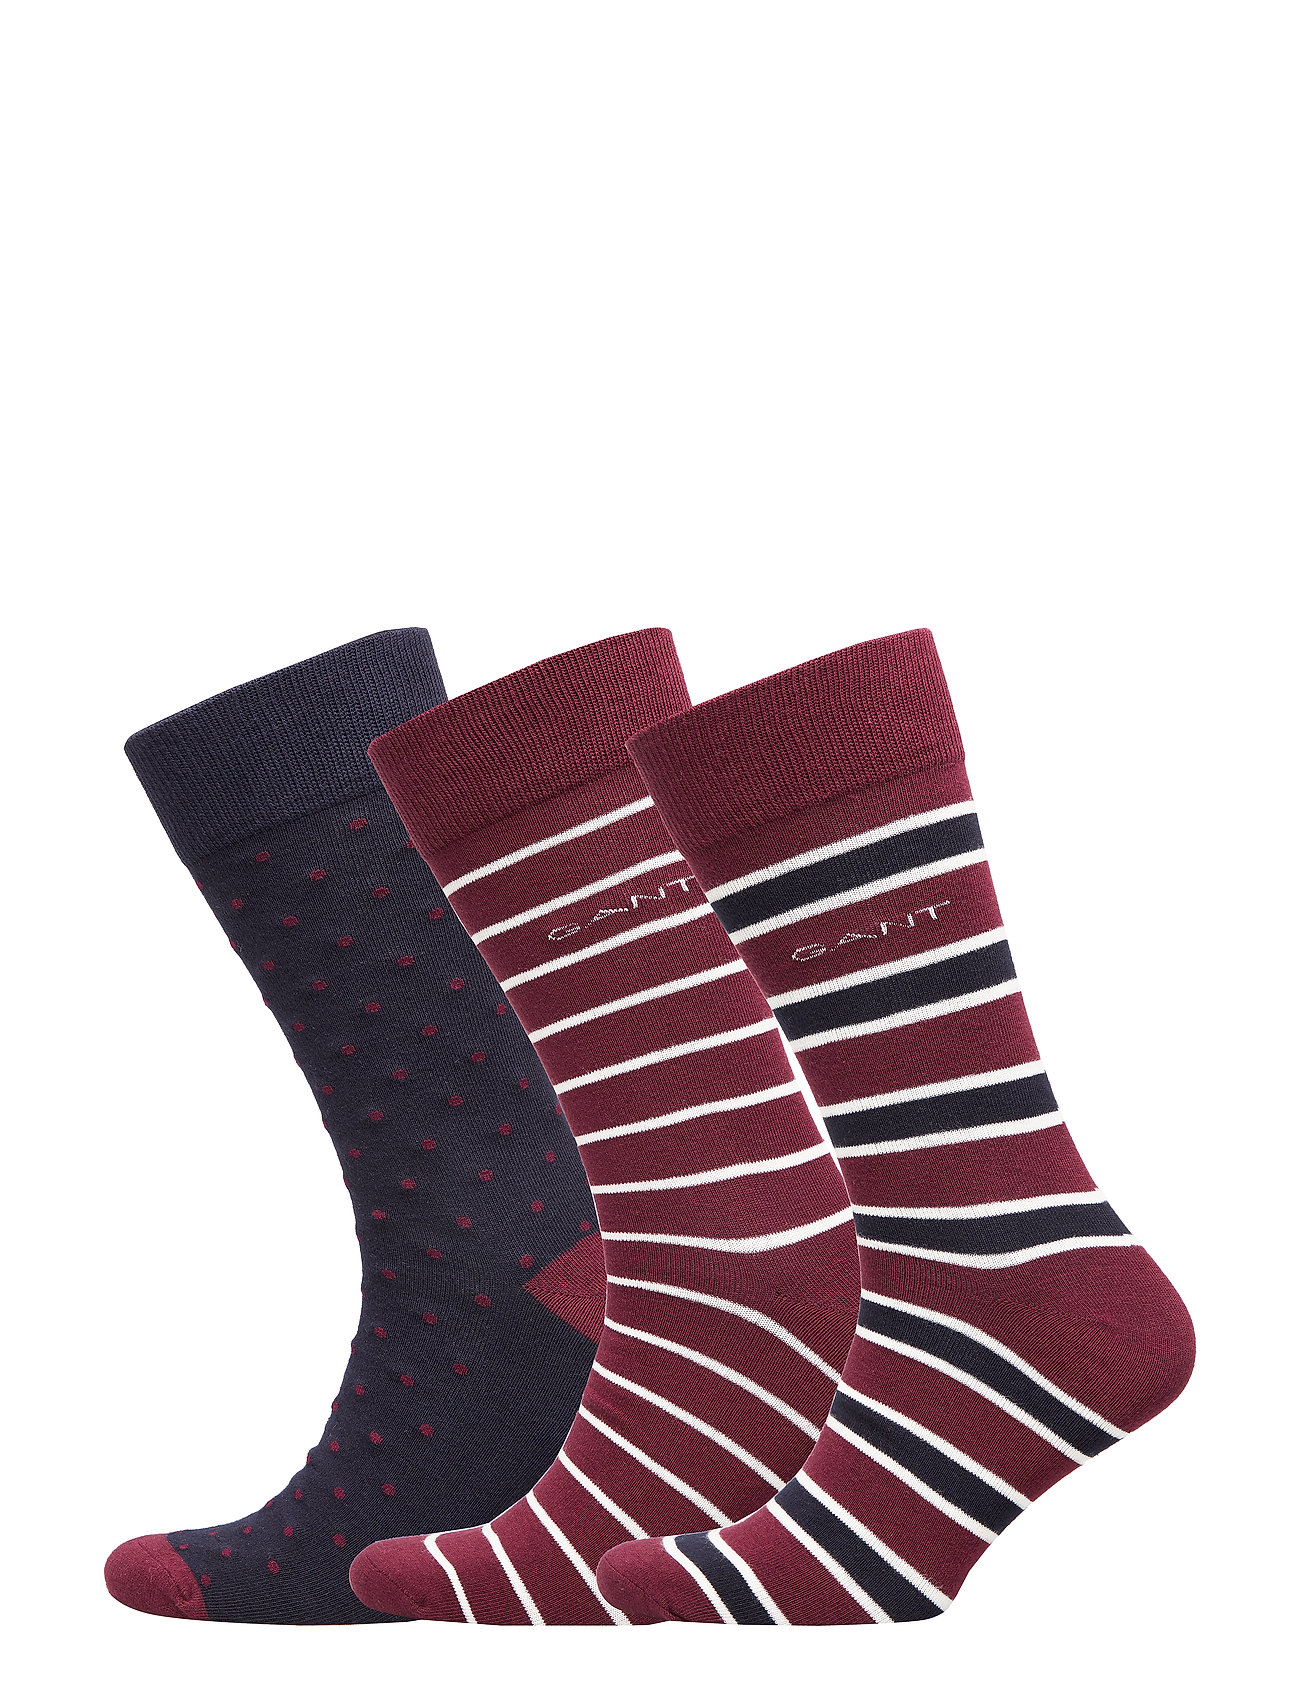 GANT O1. 3-PACK MIXED SOCKS - PORT RED